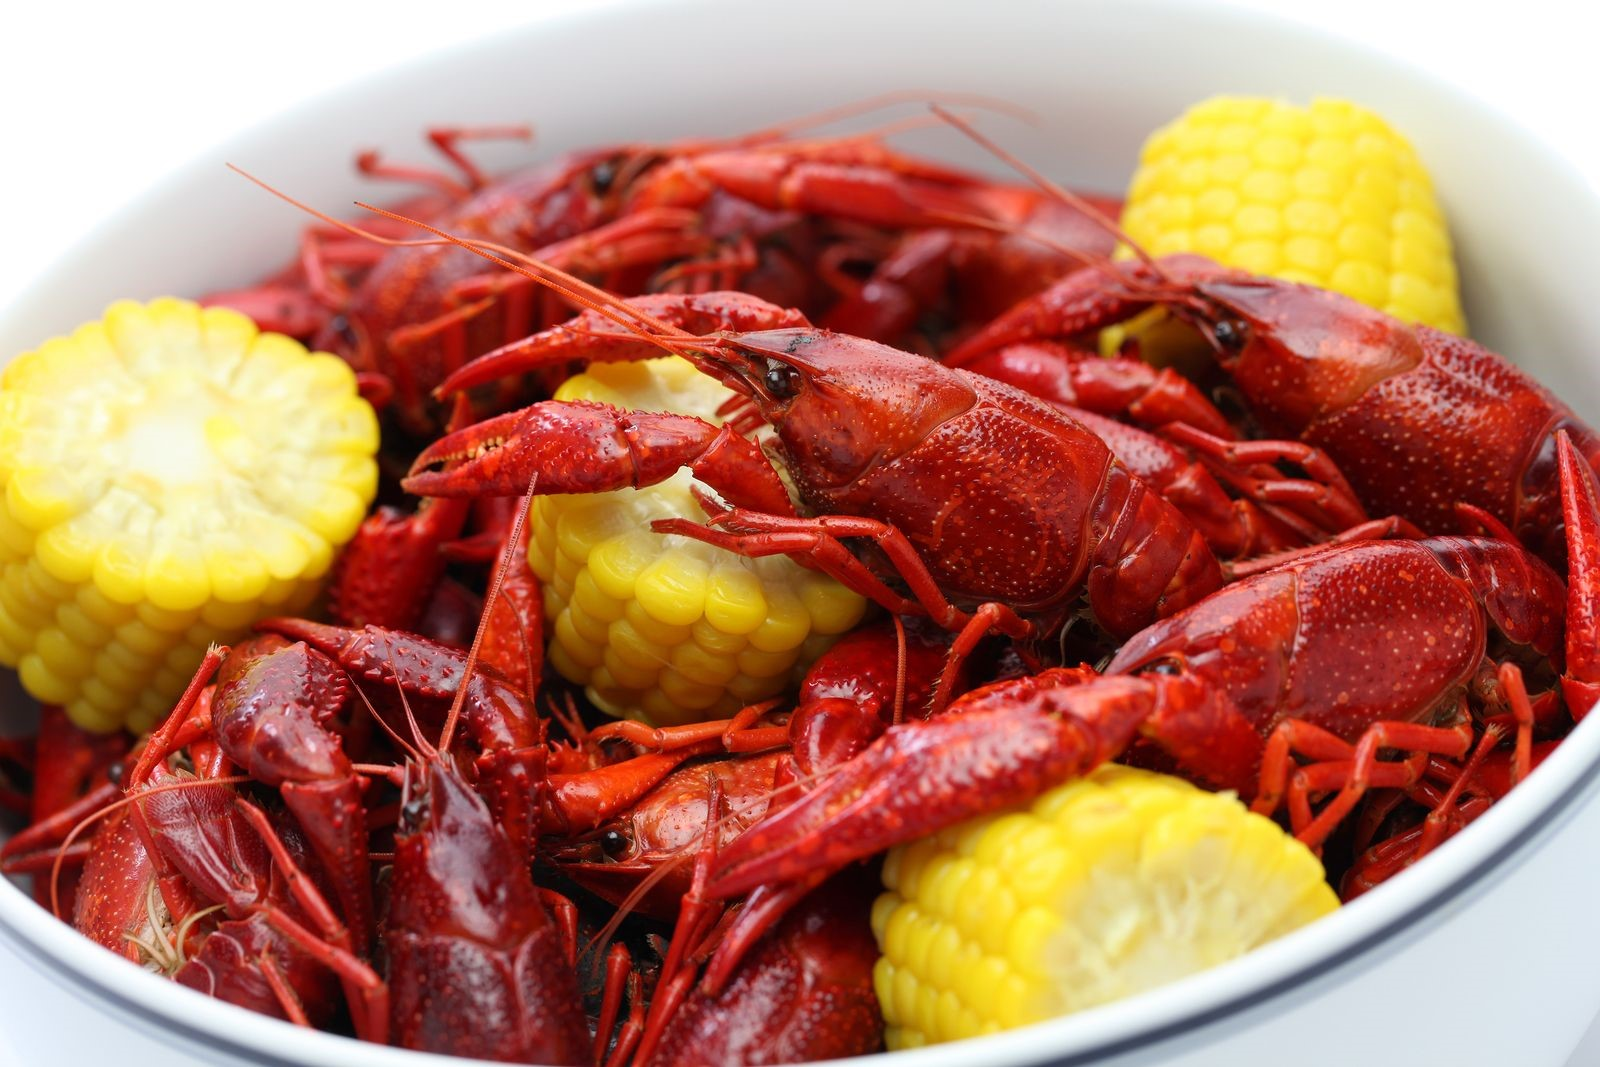 Crawfish is Often Served on a Platter: Prepare to Get a Bit Messy